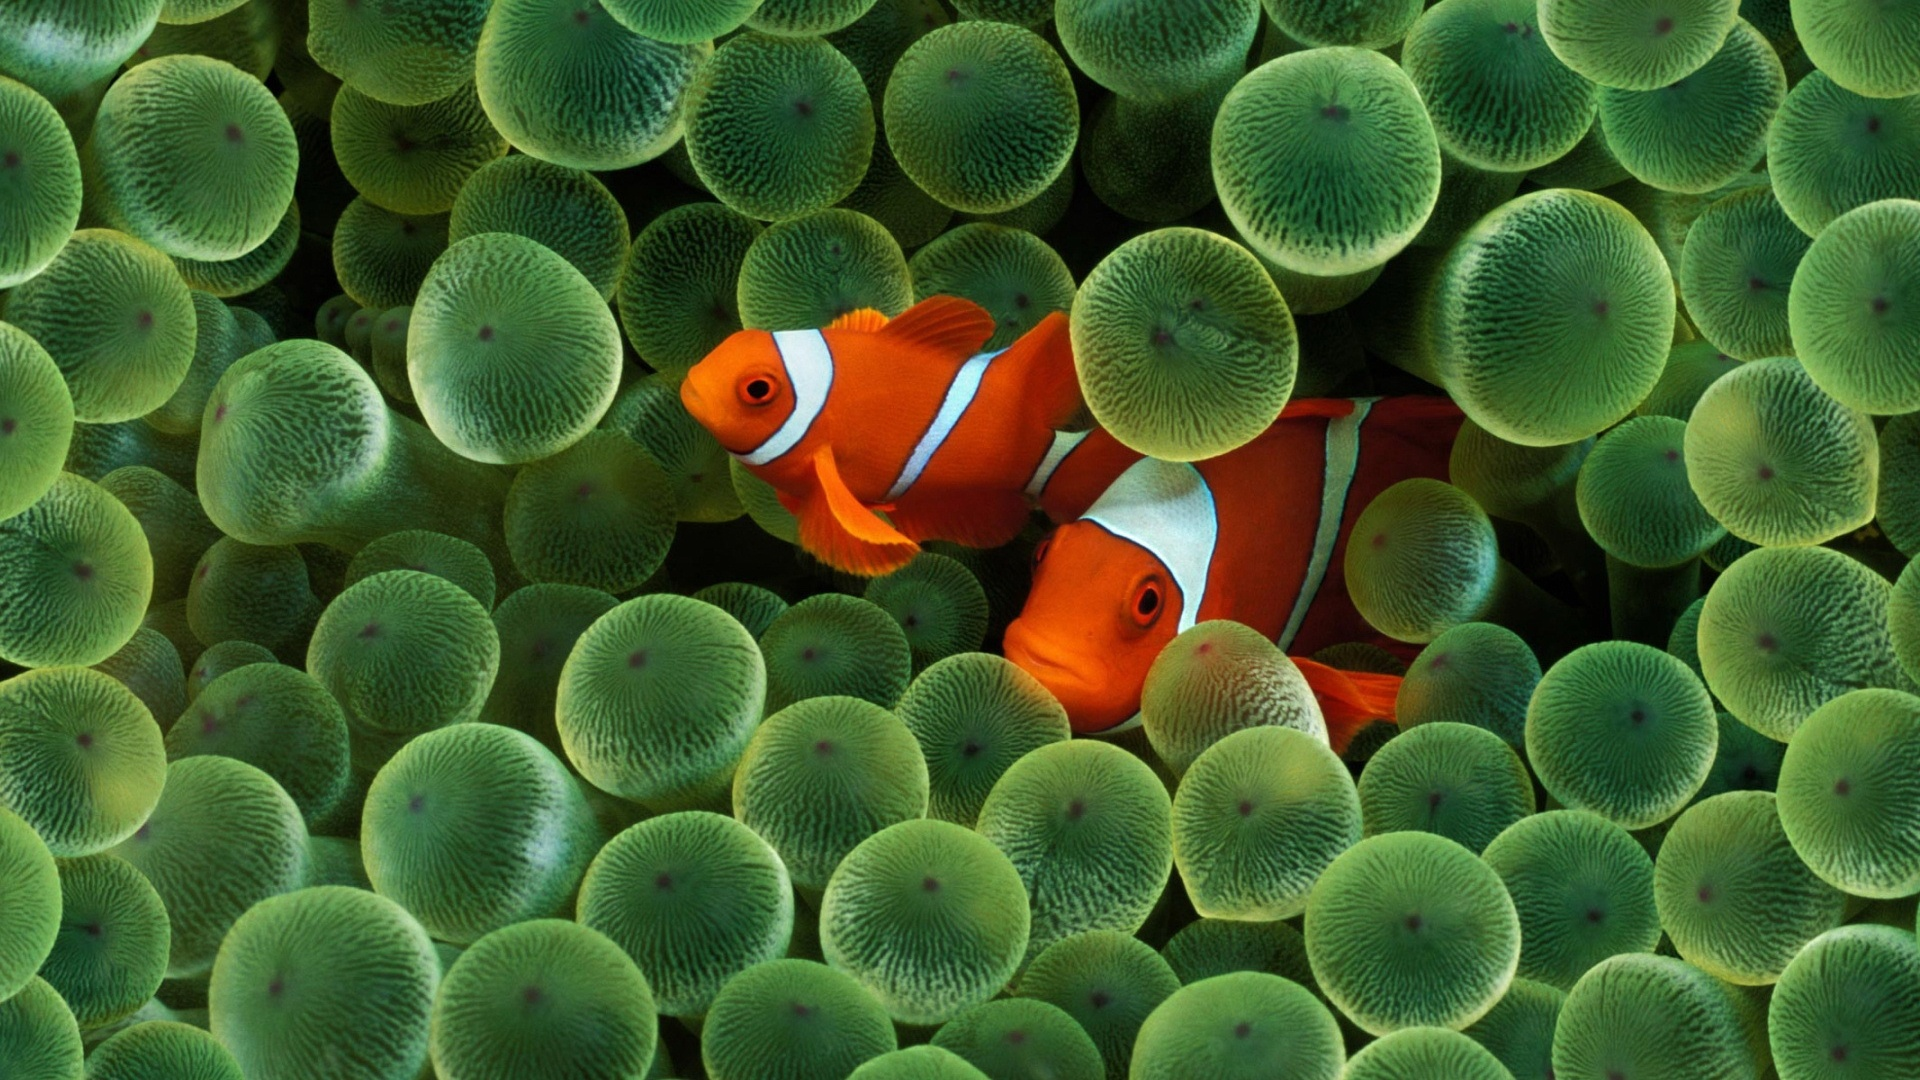 Two Colorful Fish Wallpapers